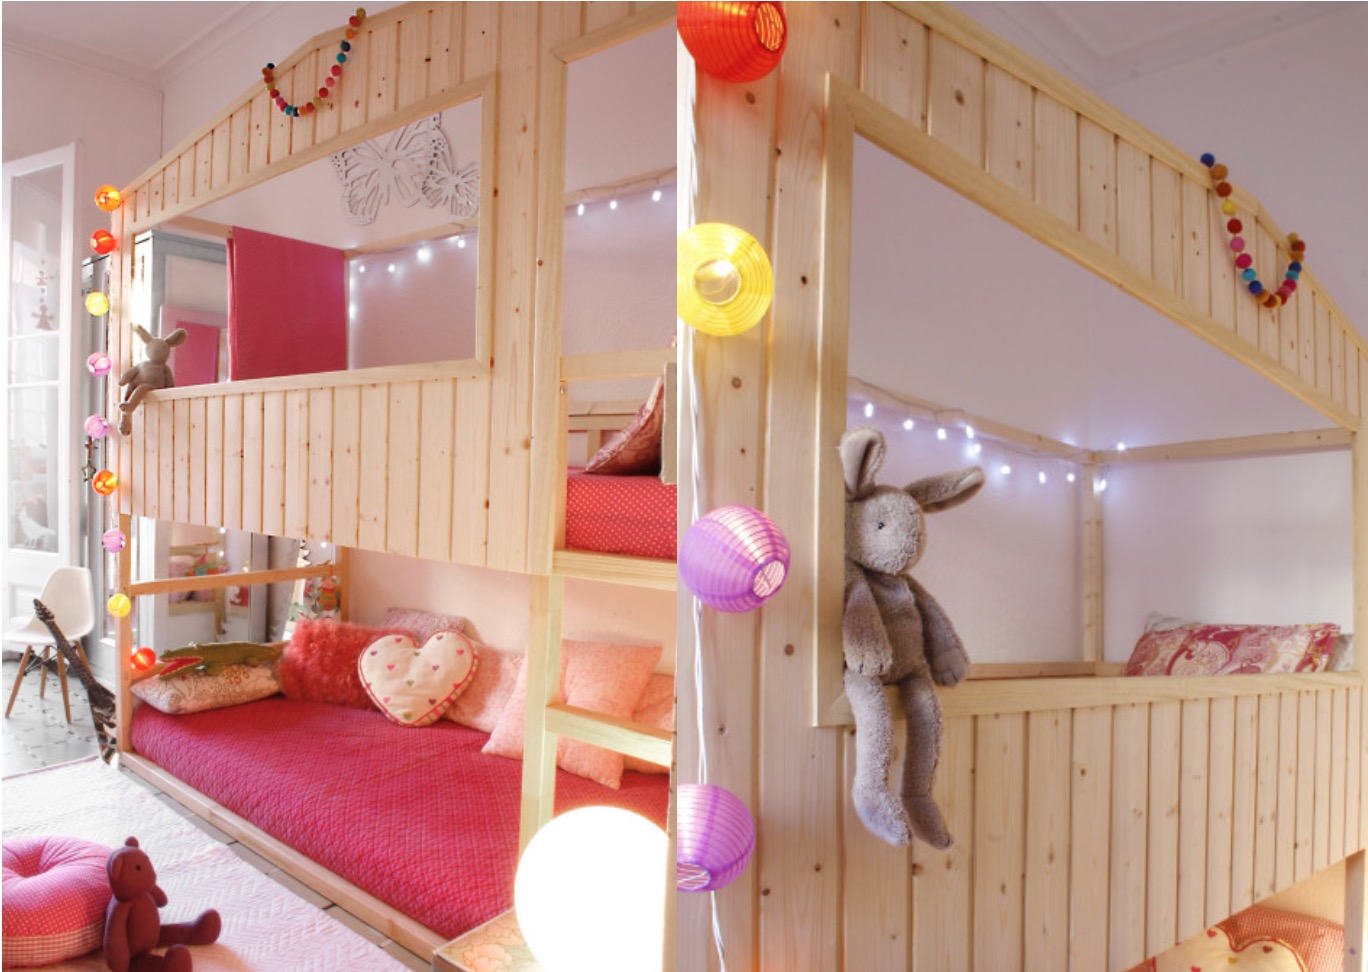 31 ikea bunk bed hacks that will make your kids want to share a room. Black Bedroom Furniture Sets. Home Design Ideas